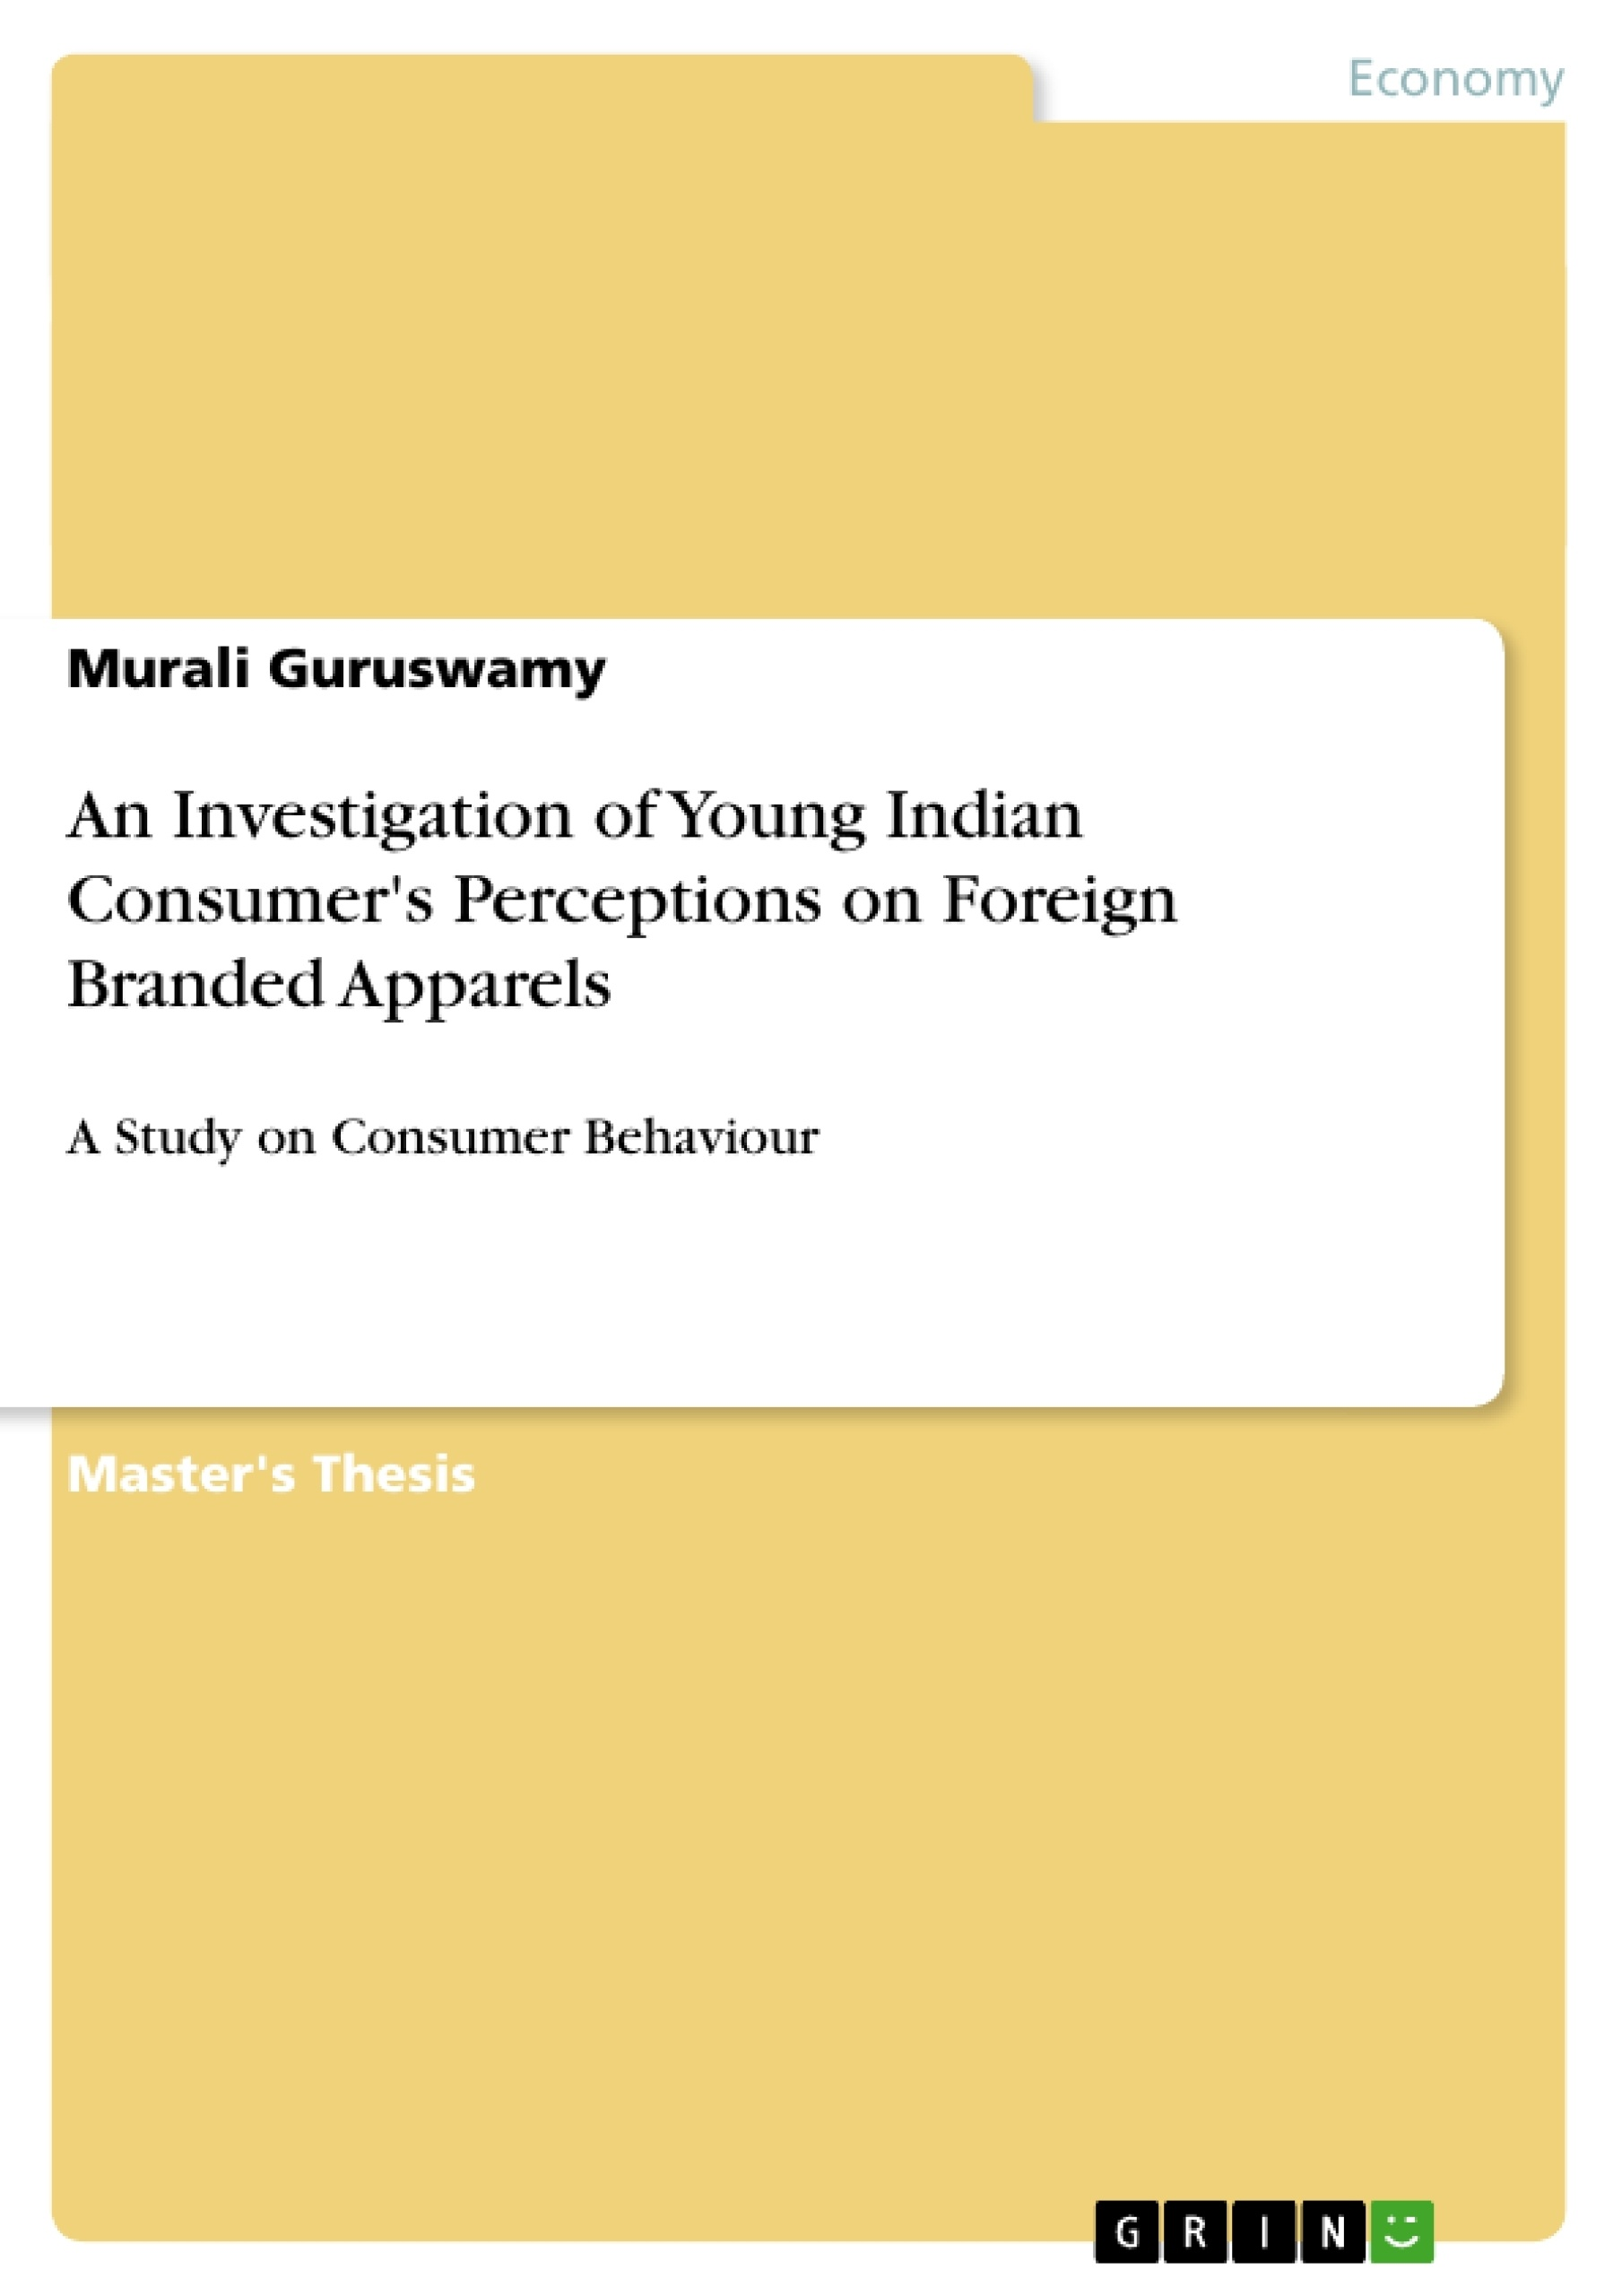 Title: An Investigation of Young Indian Consumer's Perceptions on Foreign Branded Apparels